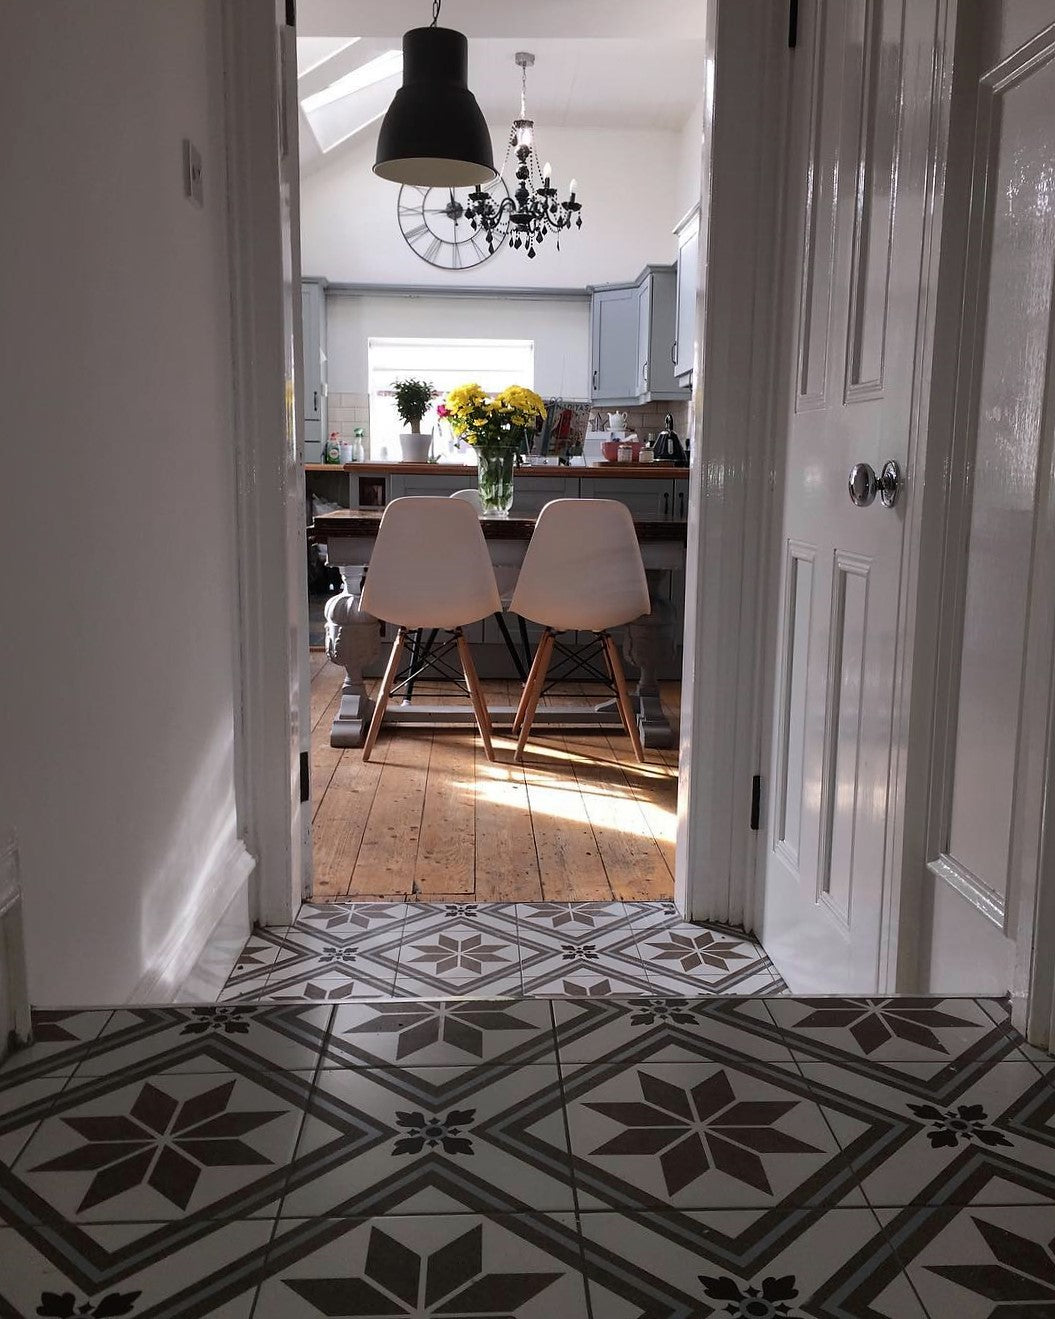 Tiled floorway in hallway/entryway leading to an open plan kitchen diner in a Victorian terrace on www.lovetohome.co.uk - photo credit with permission from Claire via @houseofharwoodandrose on Instagram